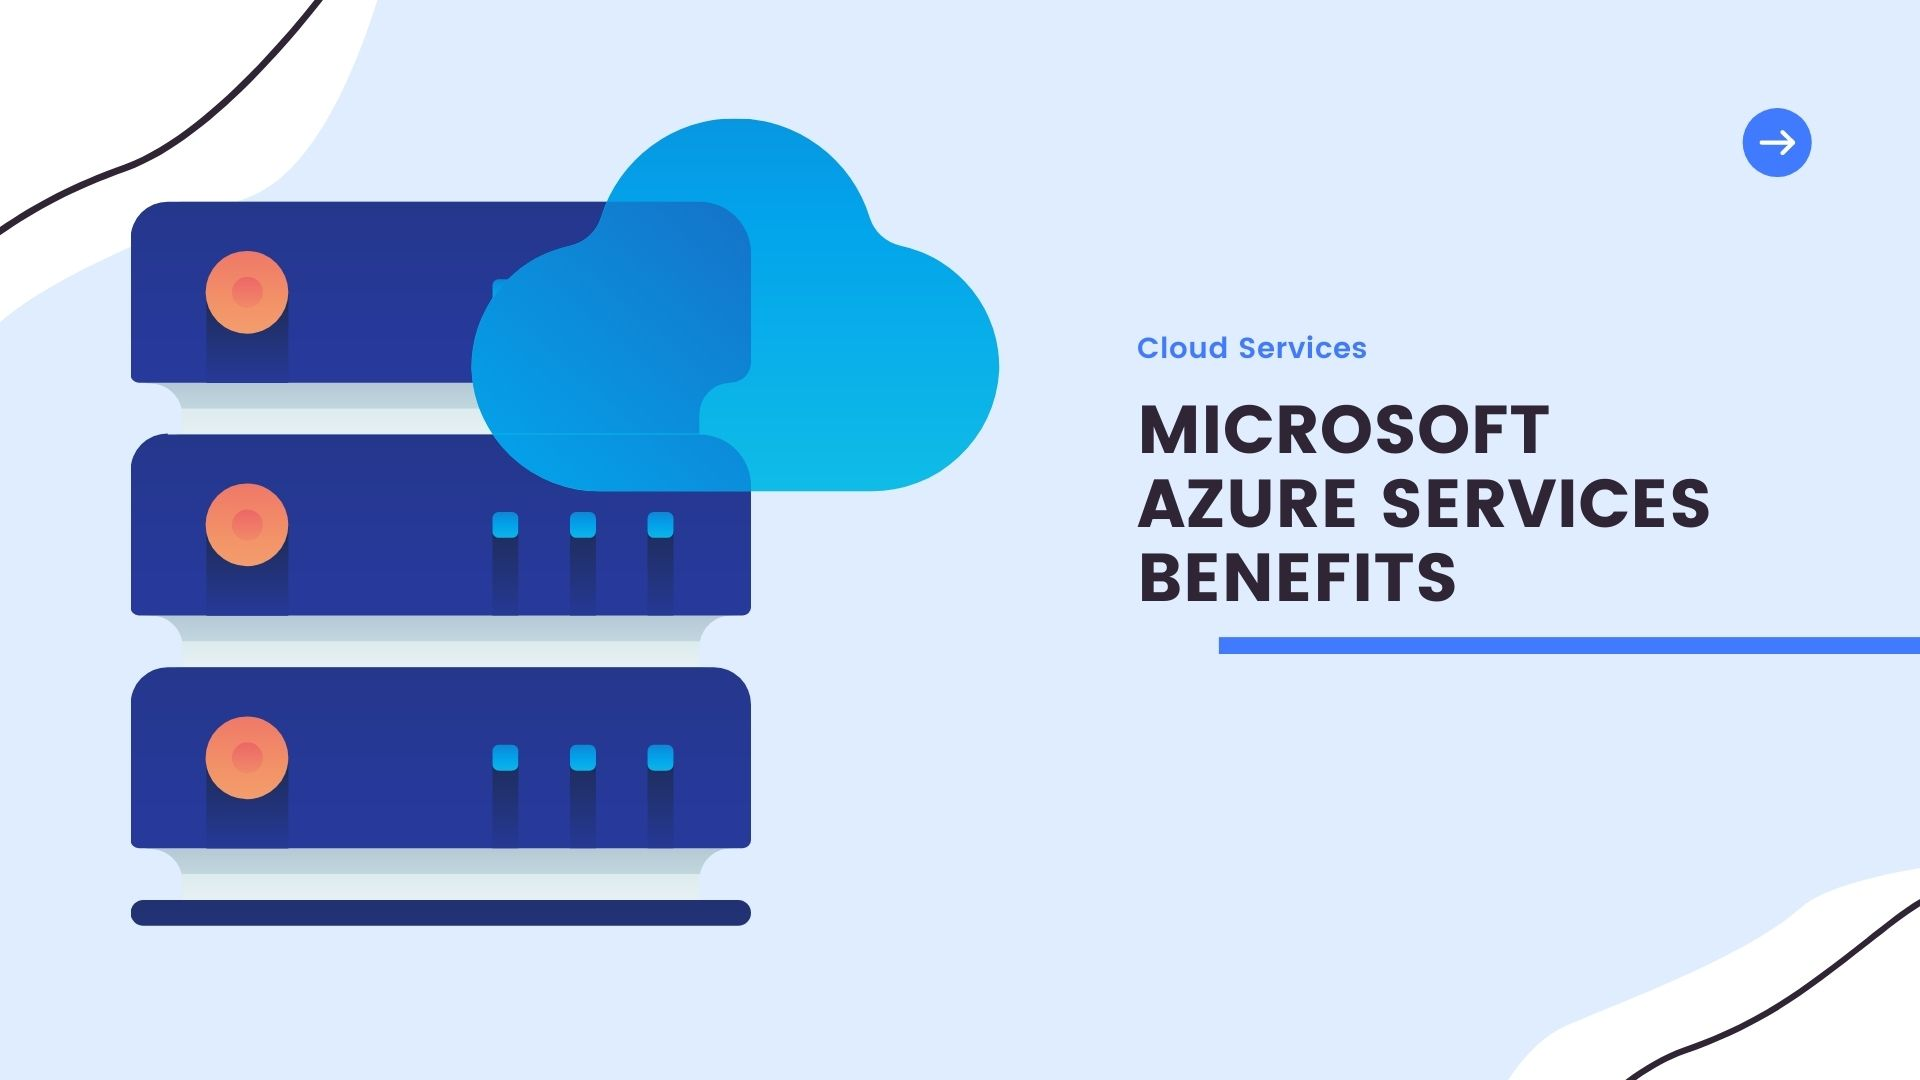 Benefits Of Microsoft Azure Services For Organizations. - thumb image